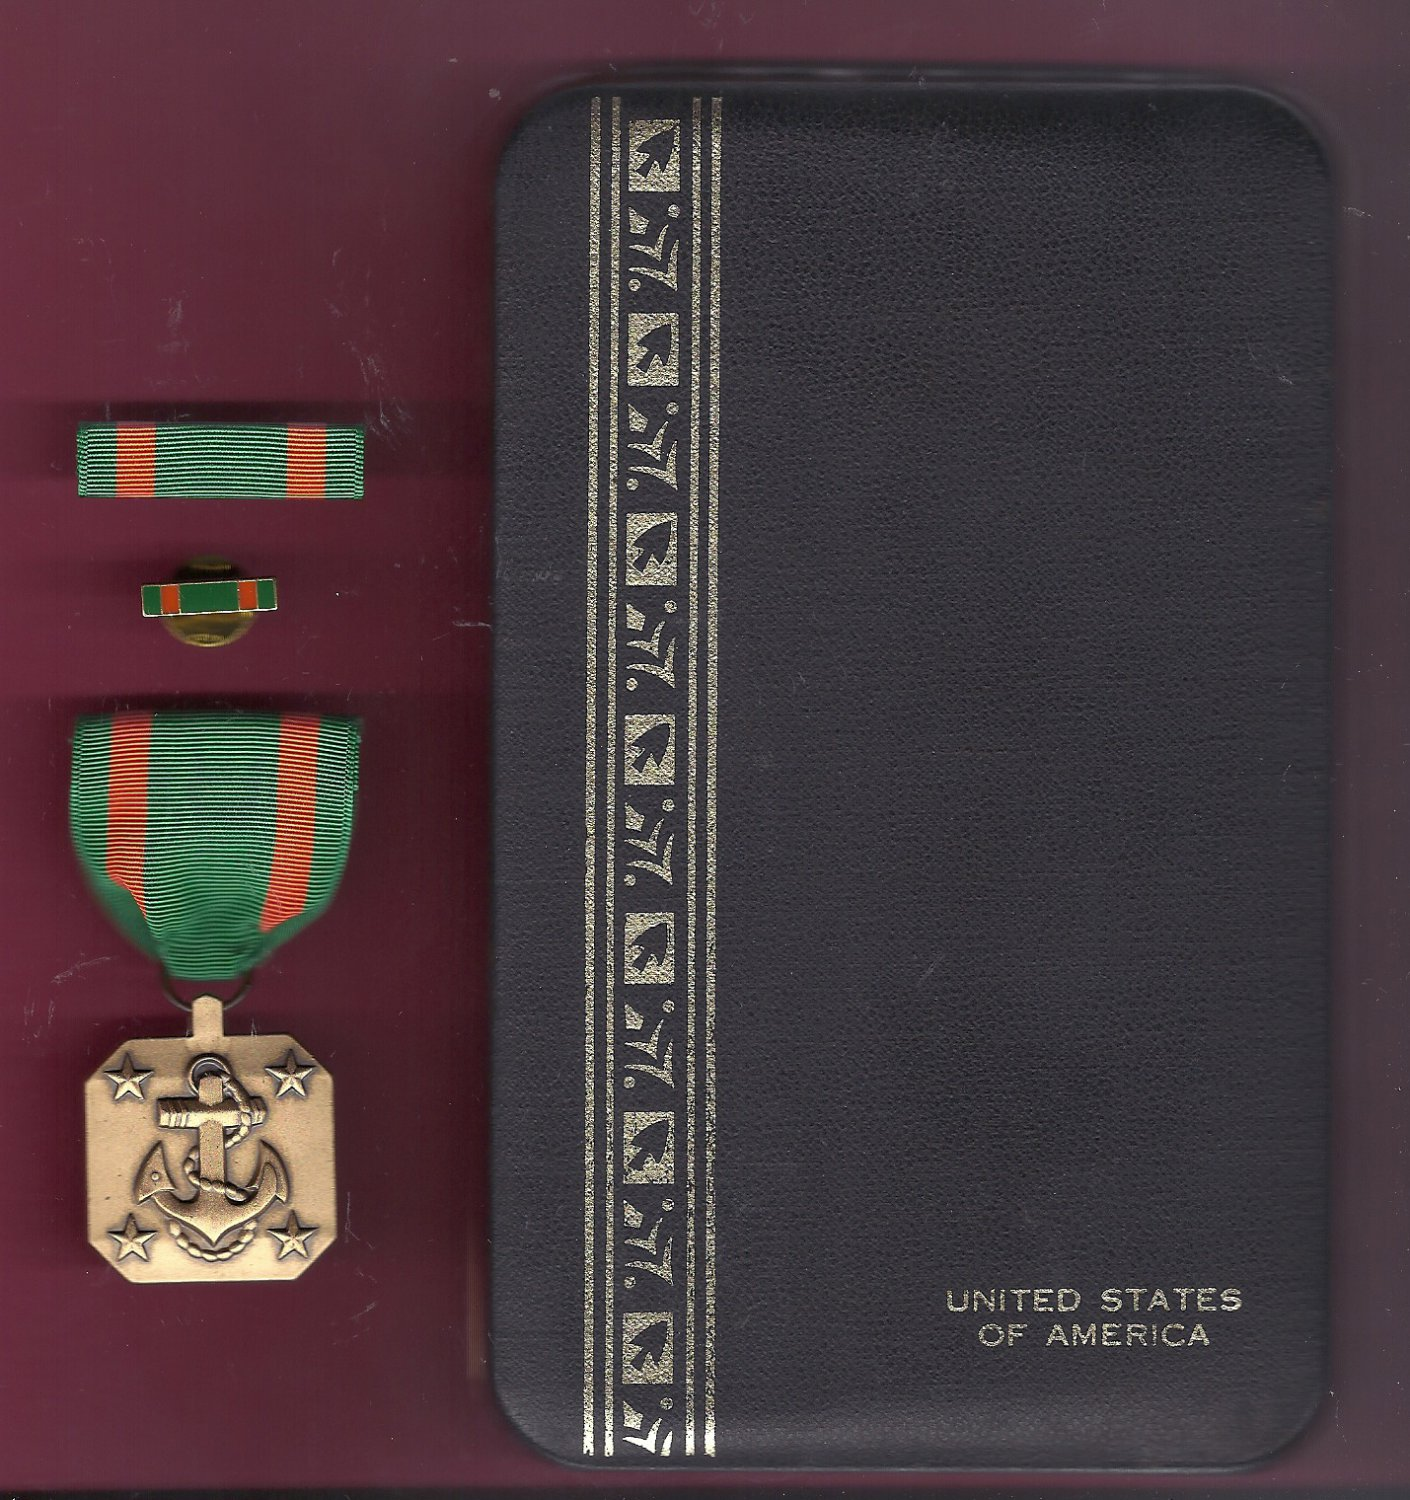 Navy Achievement medal in case with ribbon bar and lapel pin